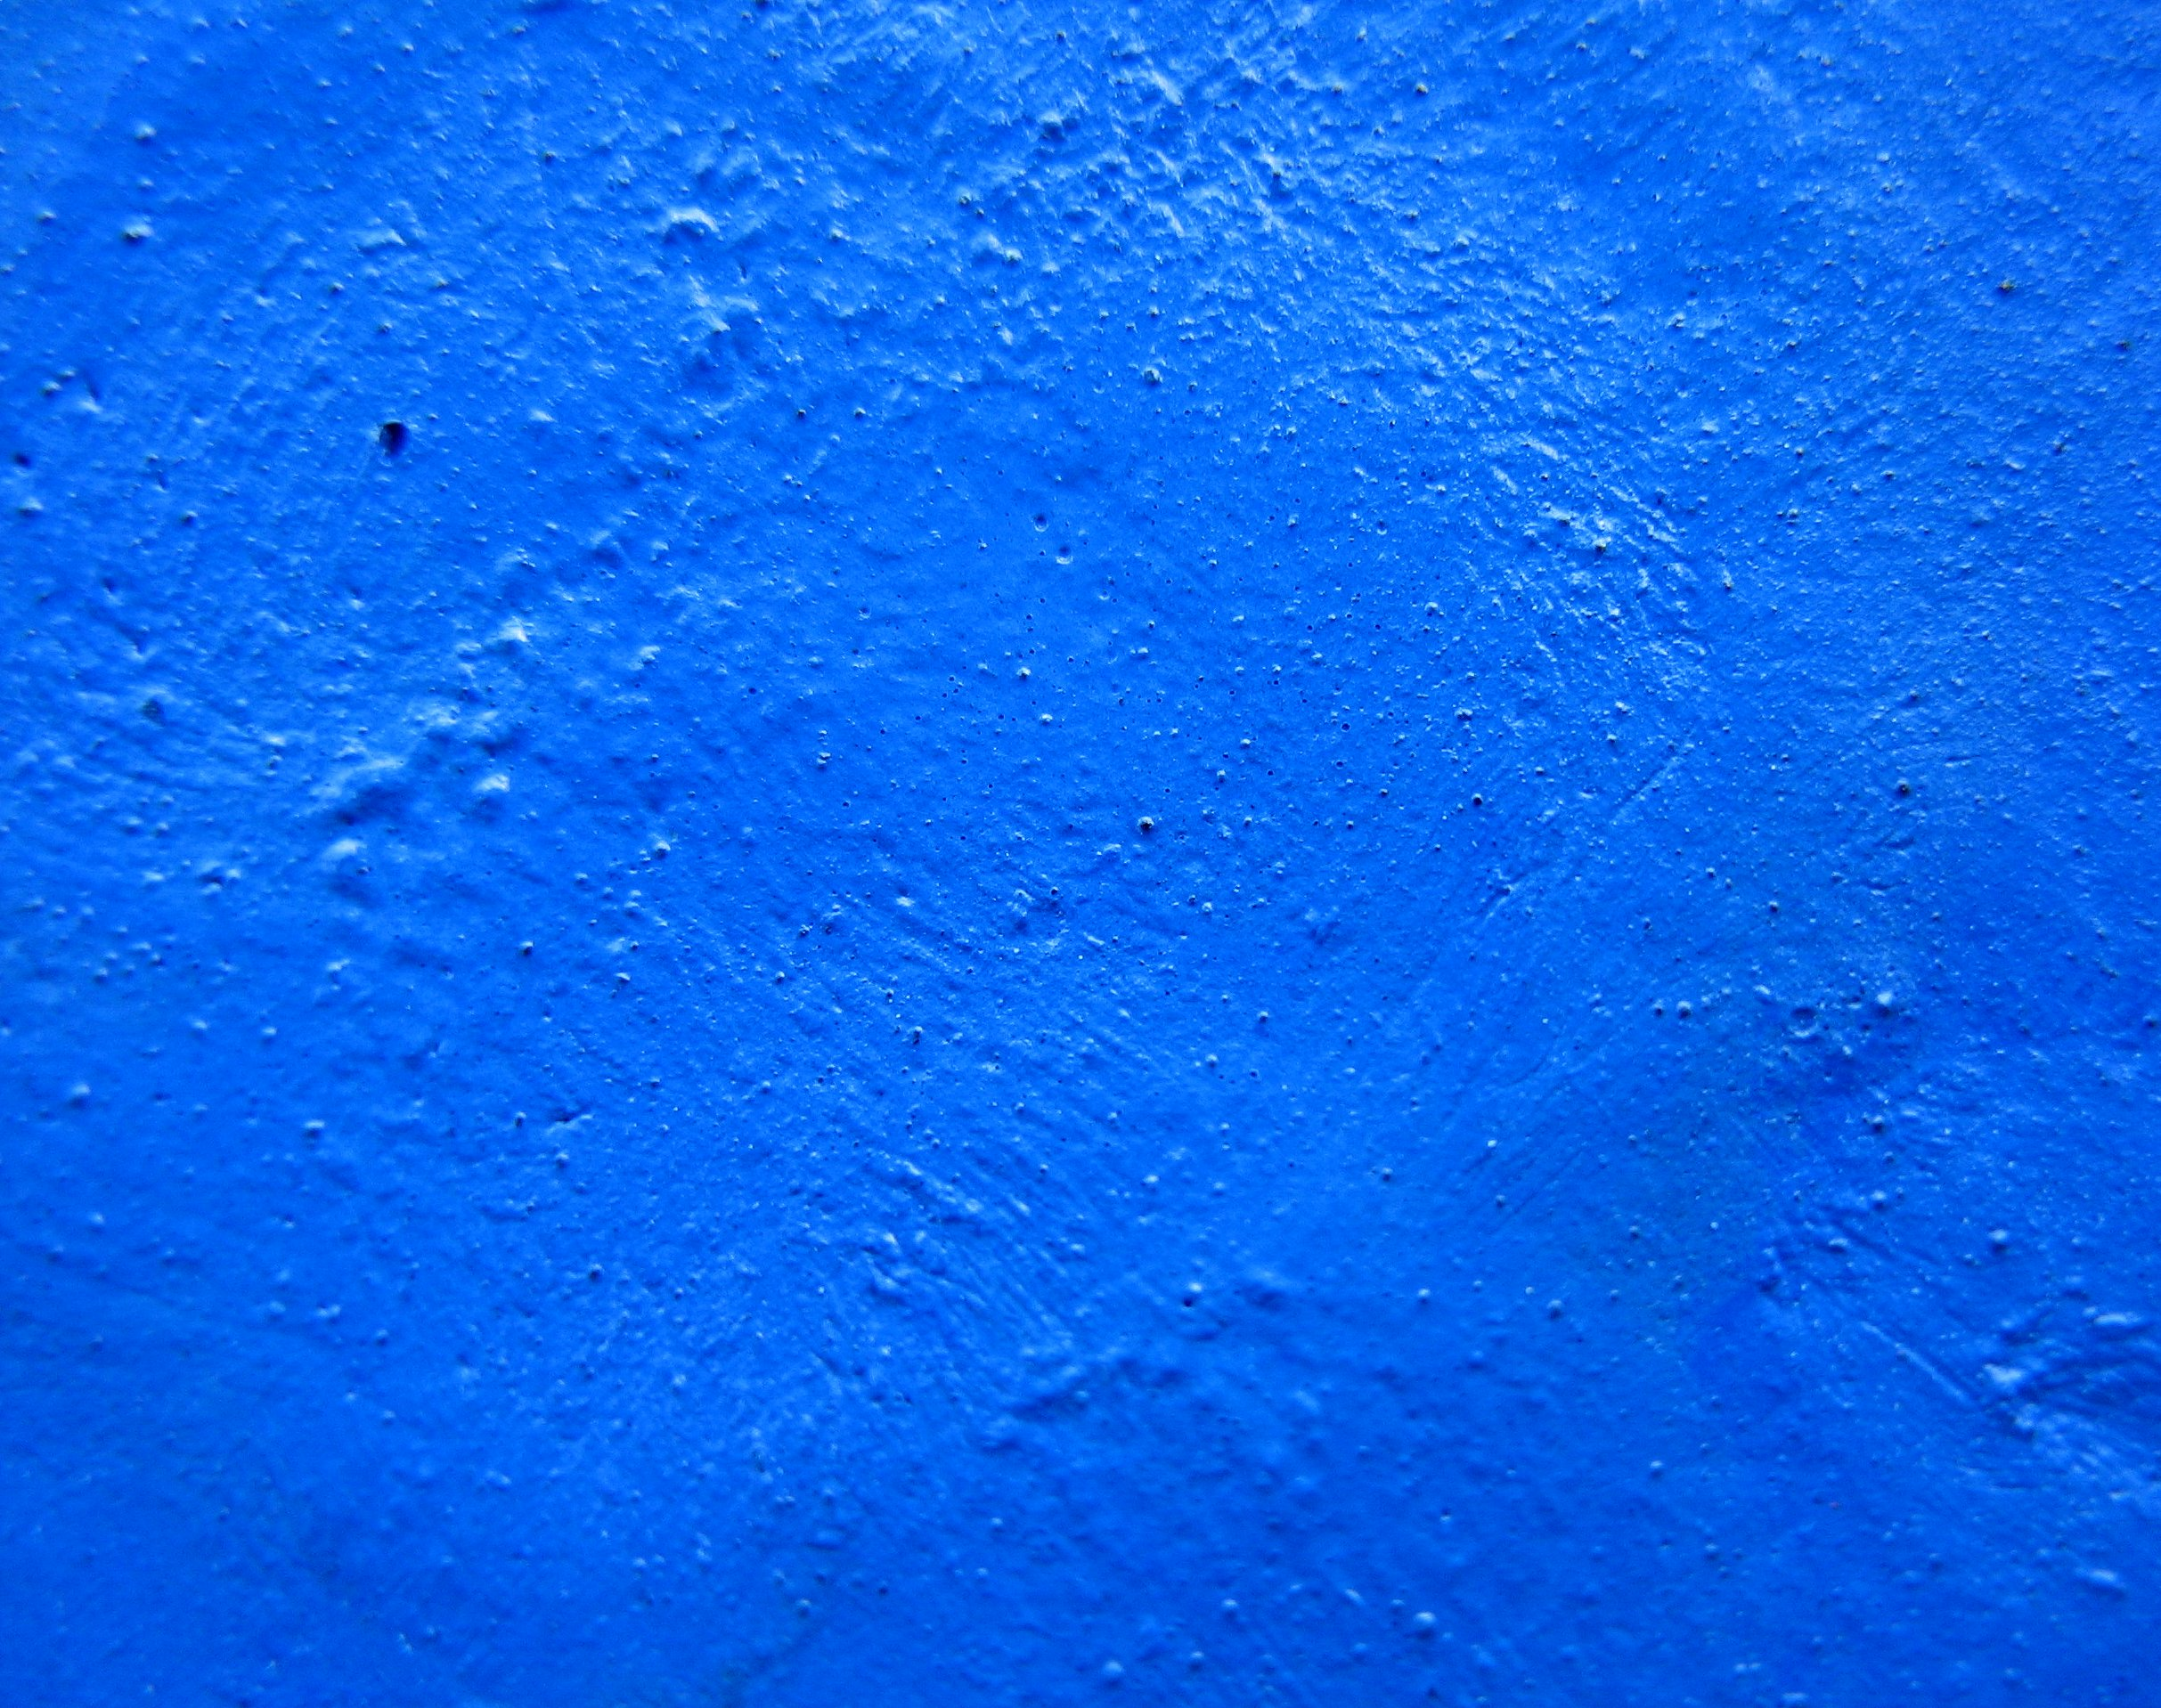 http://upload.wikimedia.org/wikipedia/commons/5/55/Gouache-bleue-blue.jpg